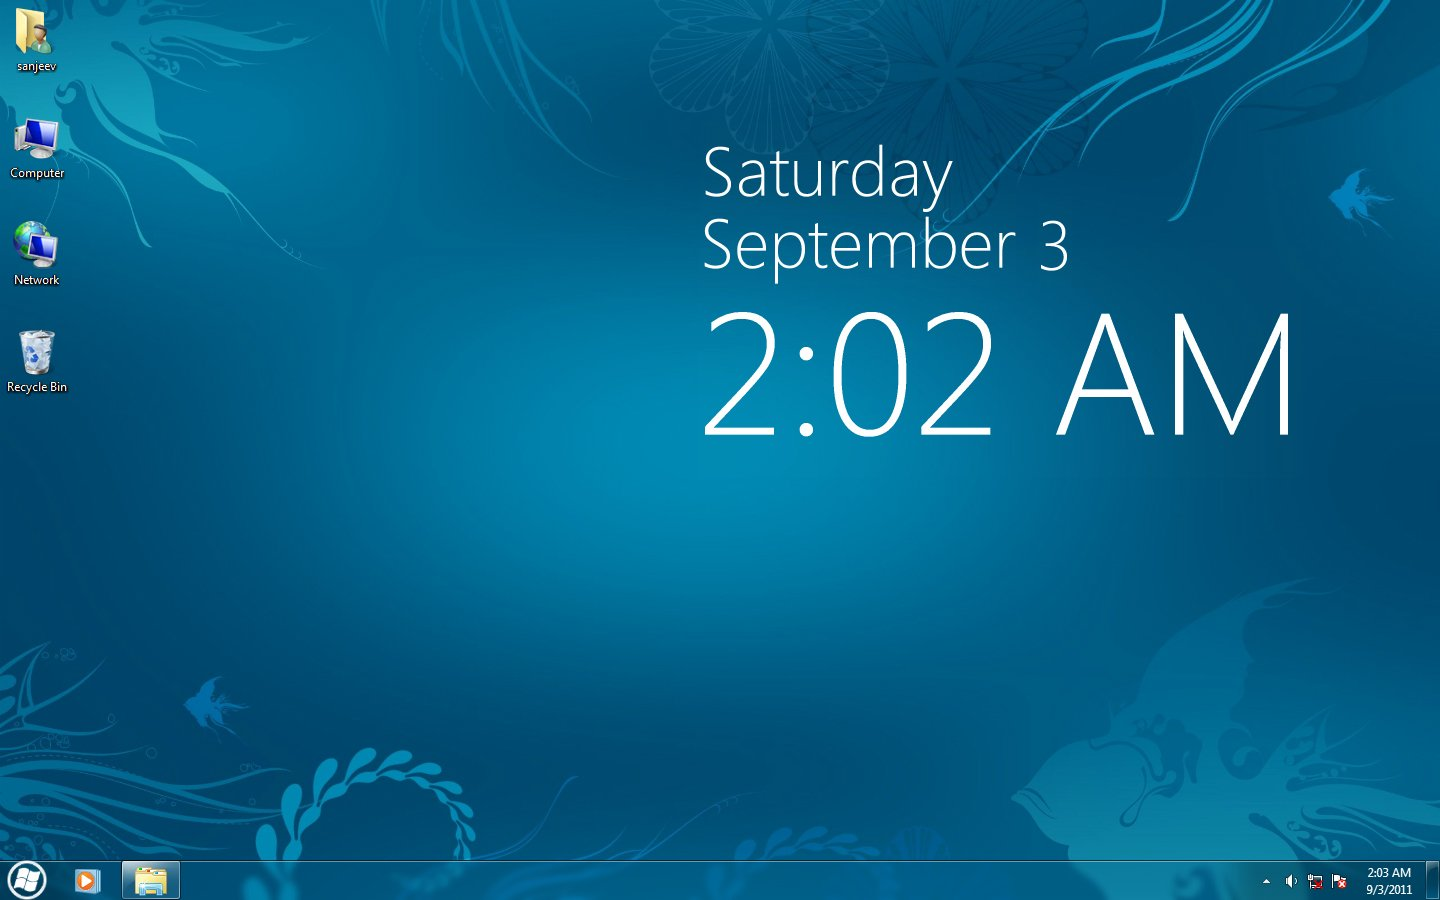 Windows 8 Clock For Xp,vista,7 By Sanjeev18 On DeviantArt